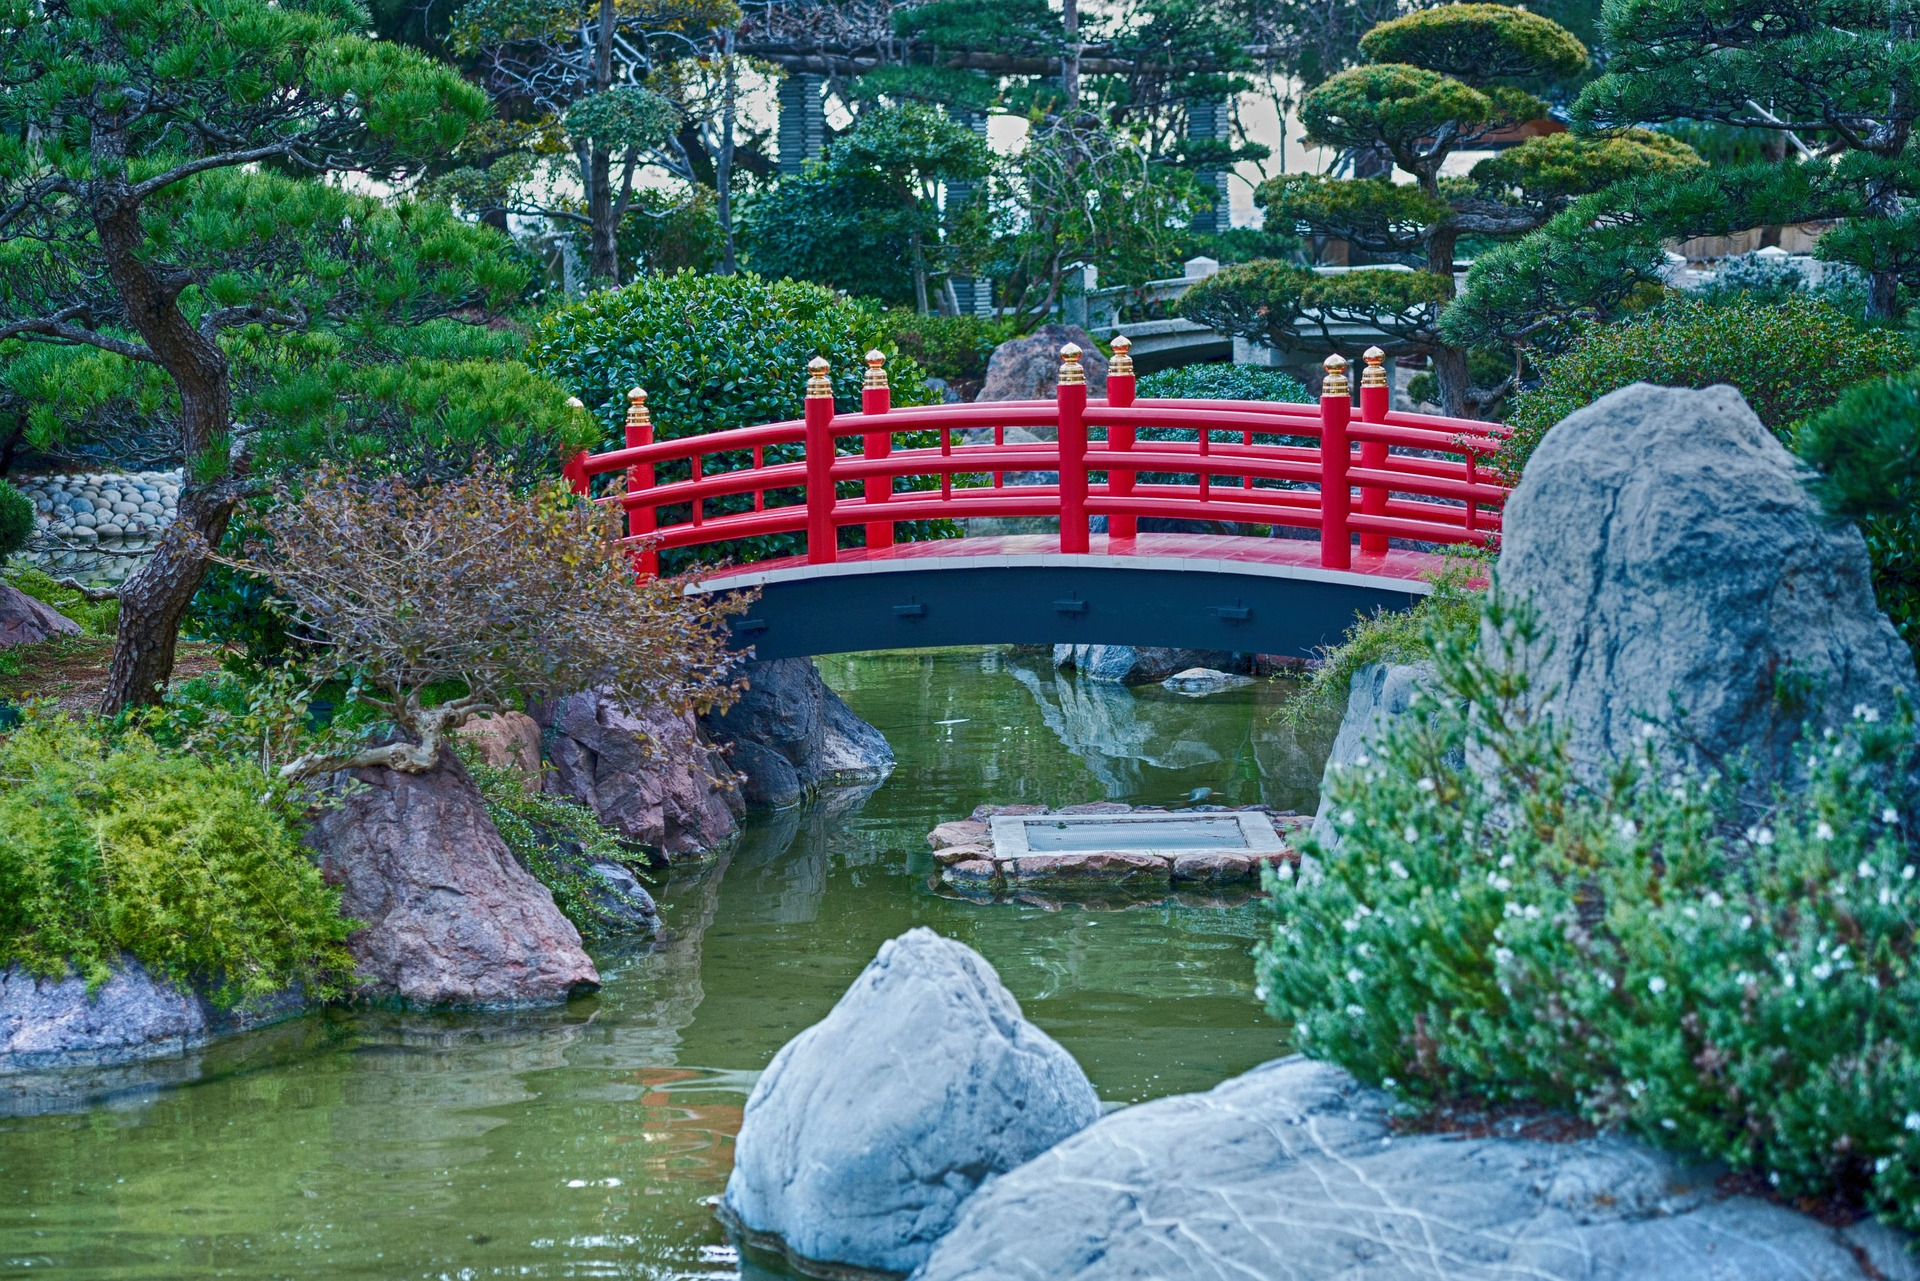 An arching bridge painted in red.